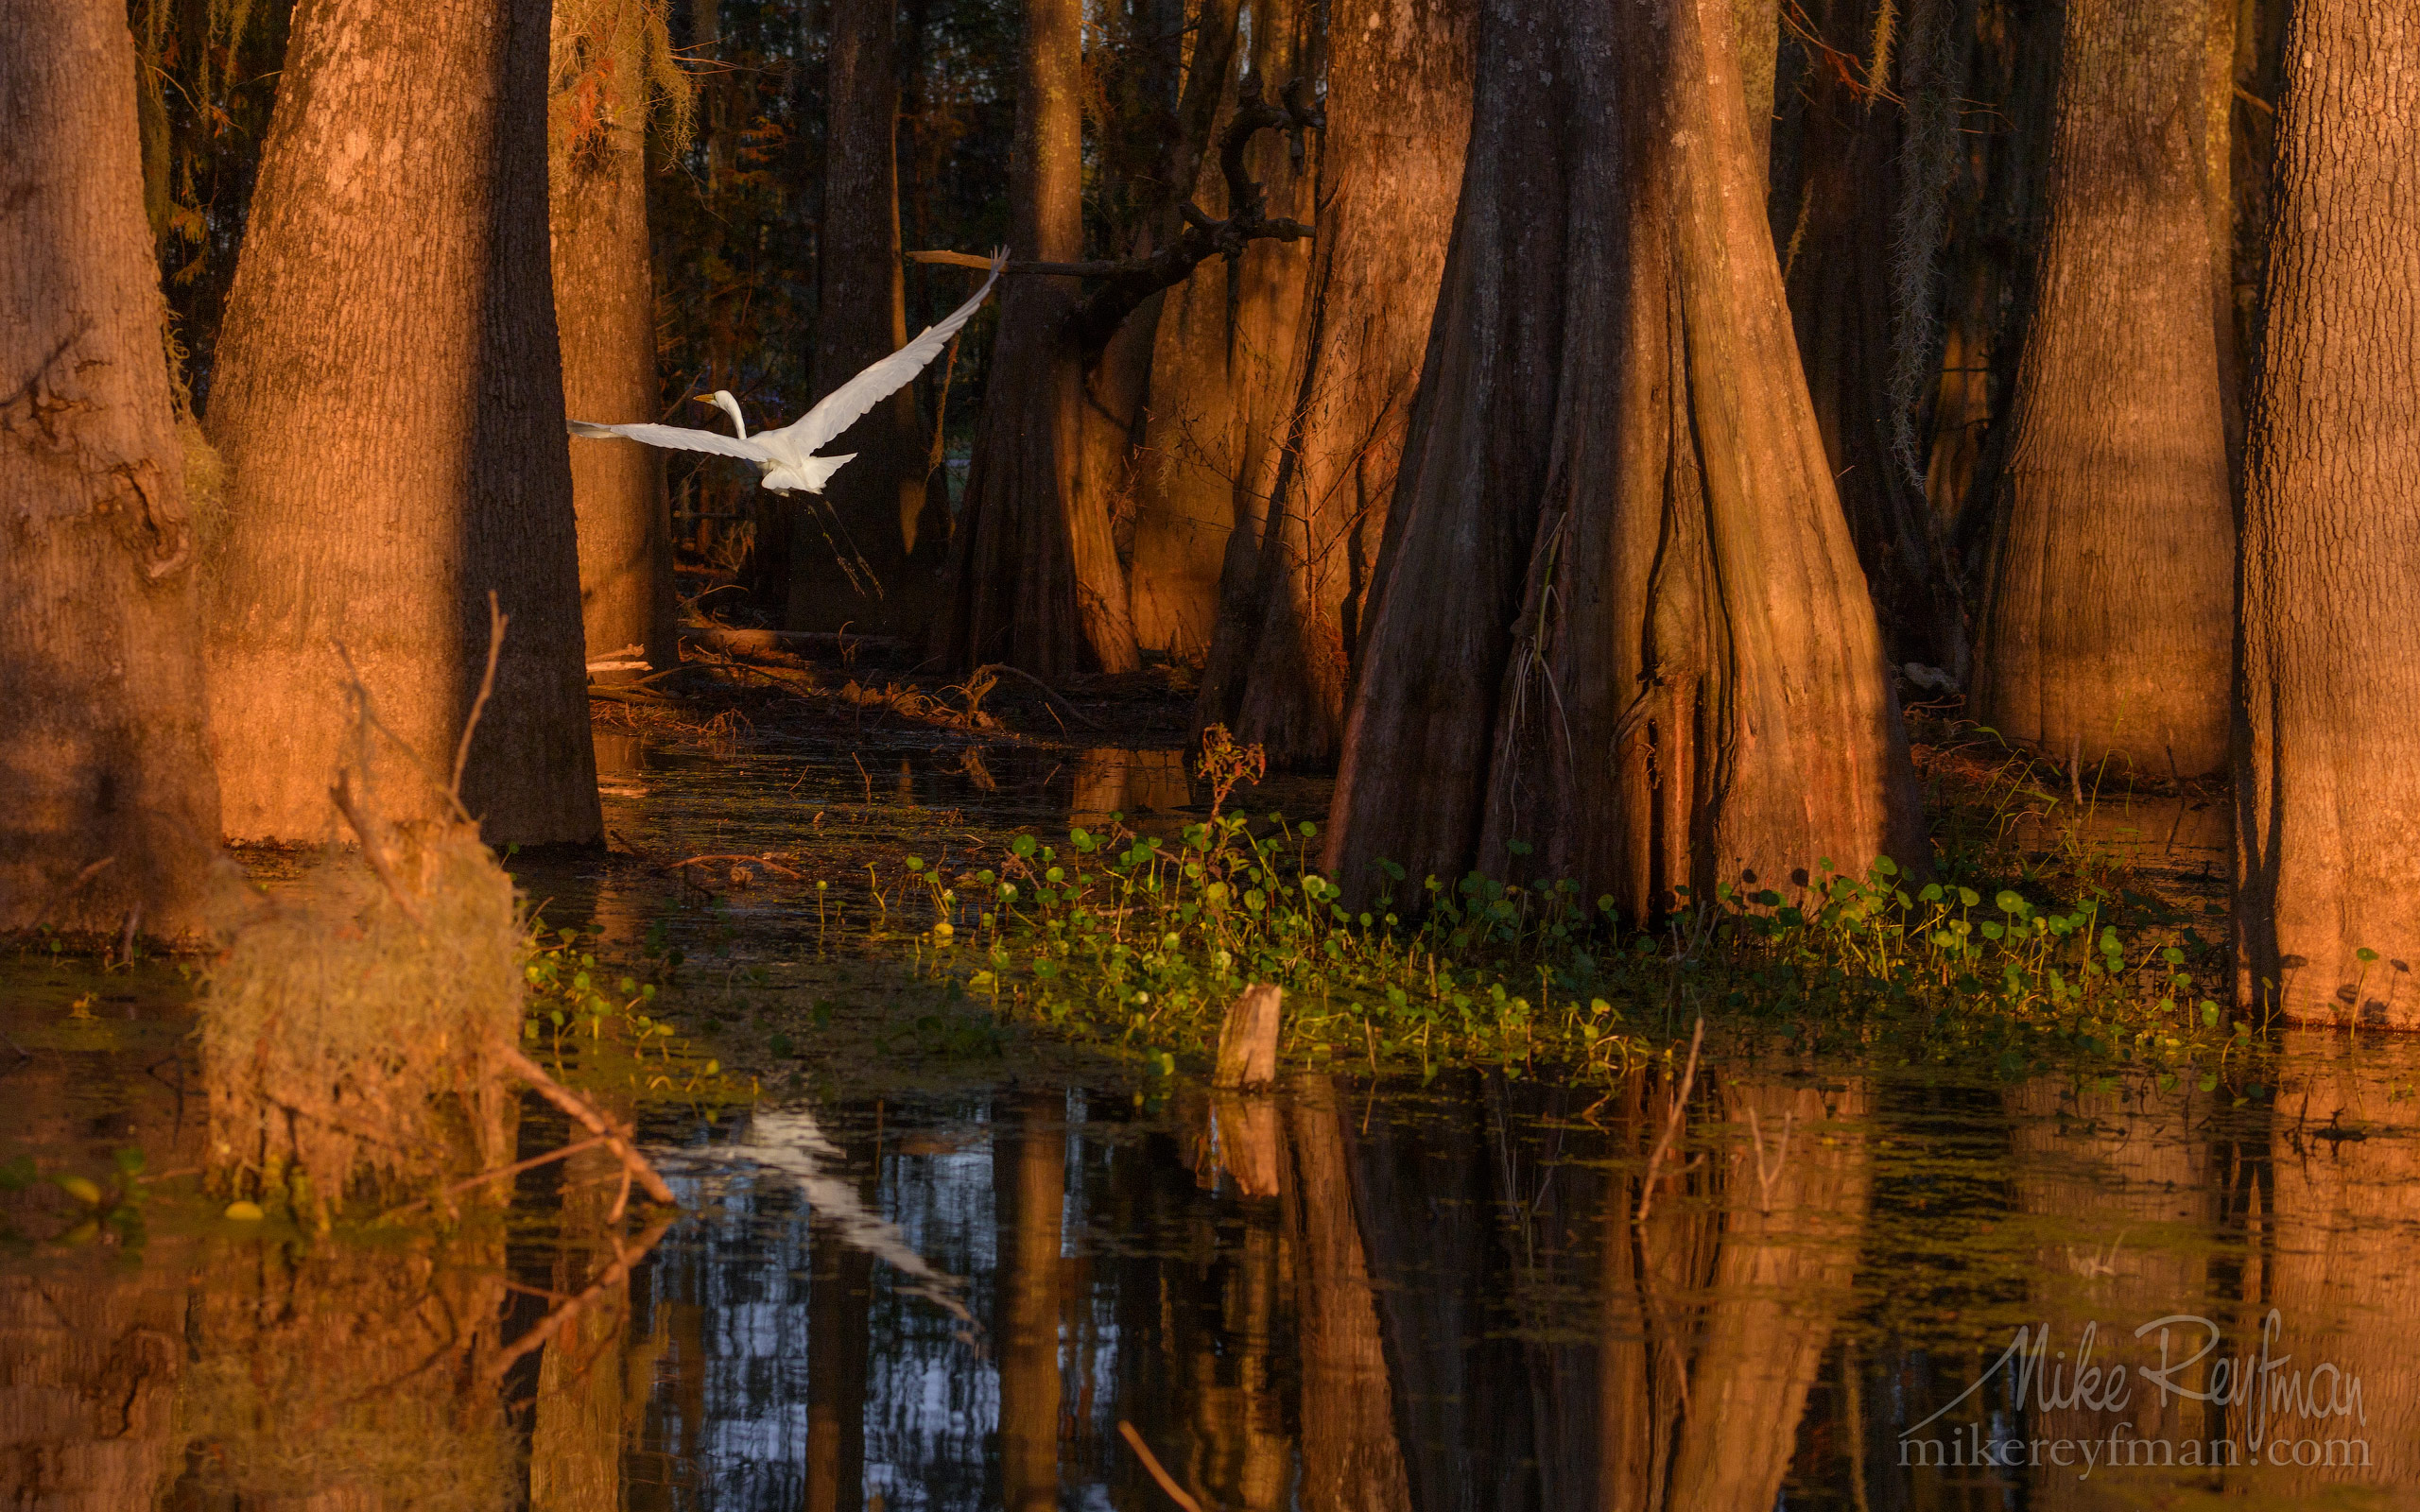 Great Egret with the buttressed trunks of Bald Cypress and Tupelo trees in the background. Lake Martin, Louisiana, US 072-LT1-50A4115.jpg - Bold Cypress and Tupelo Trees in the swamps of Atchafalaya River Basin. Caddo, Martin and Fousse Lakes. Texas/Louisiana, USA. - Mike Reyfman Photography